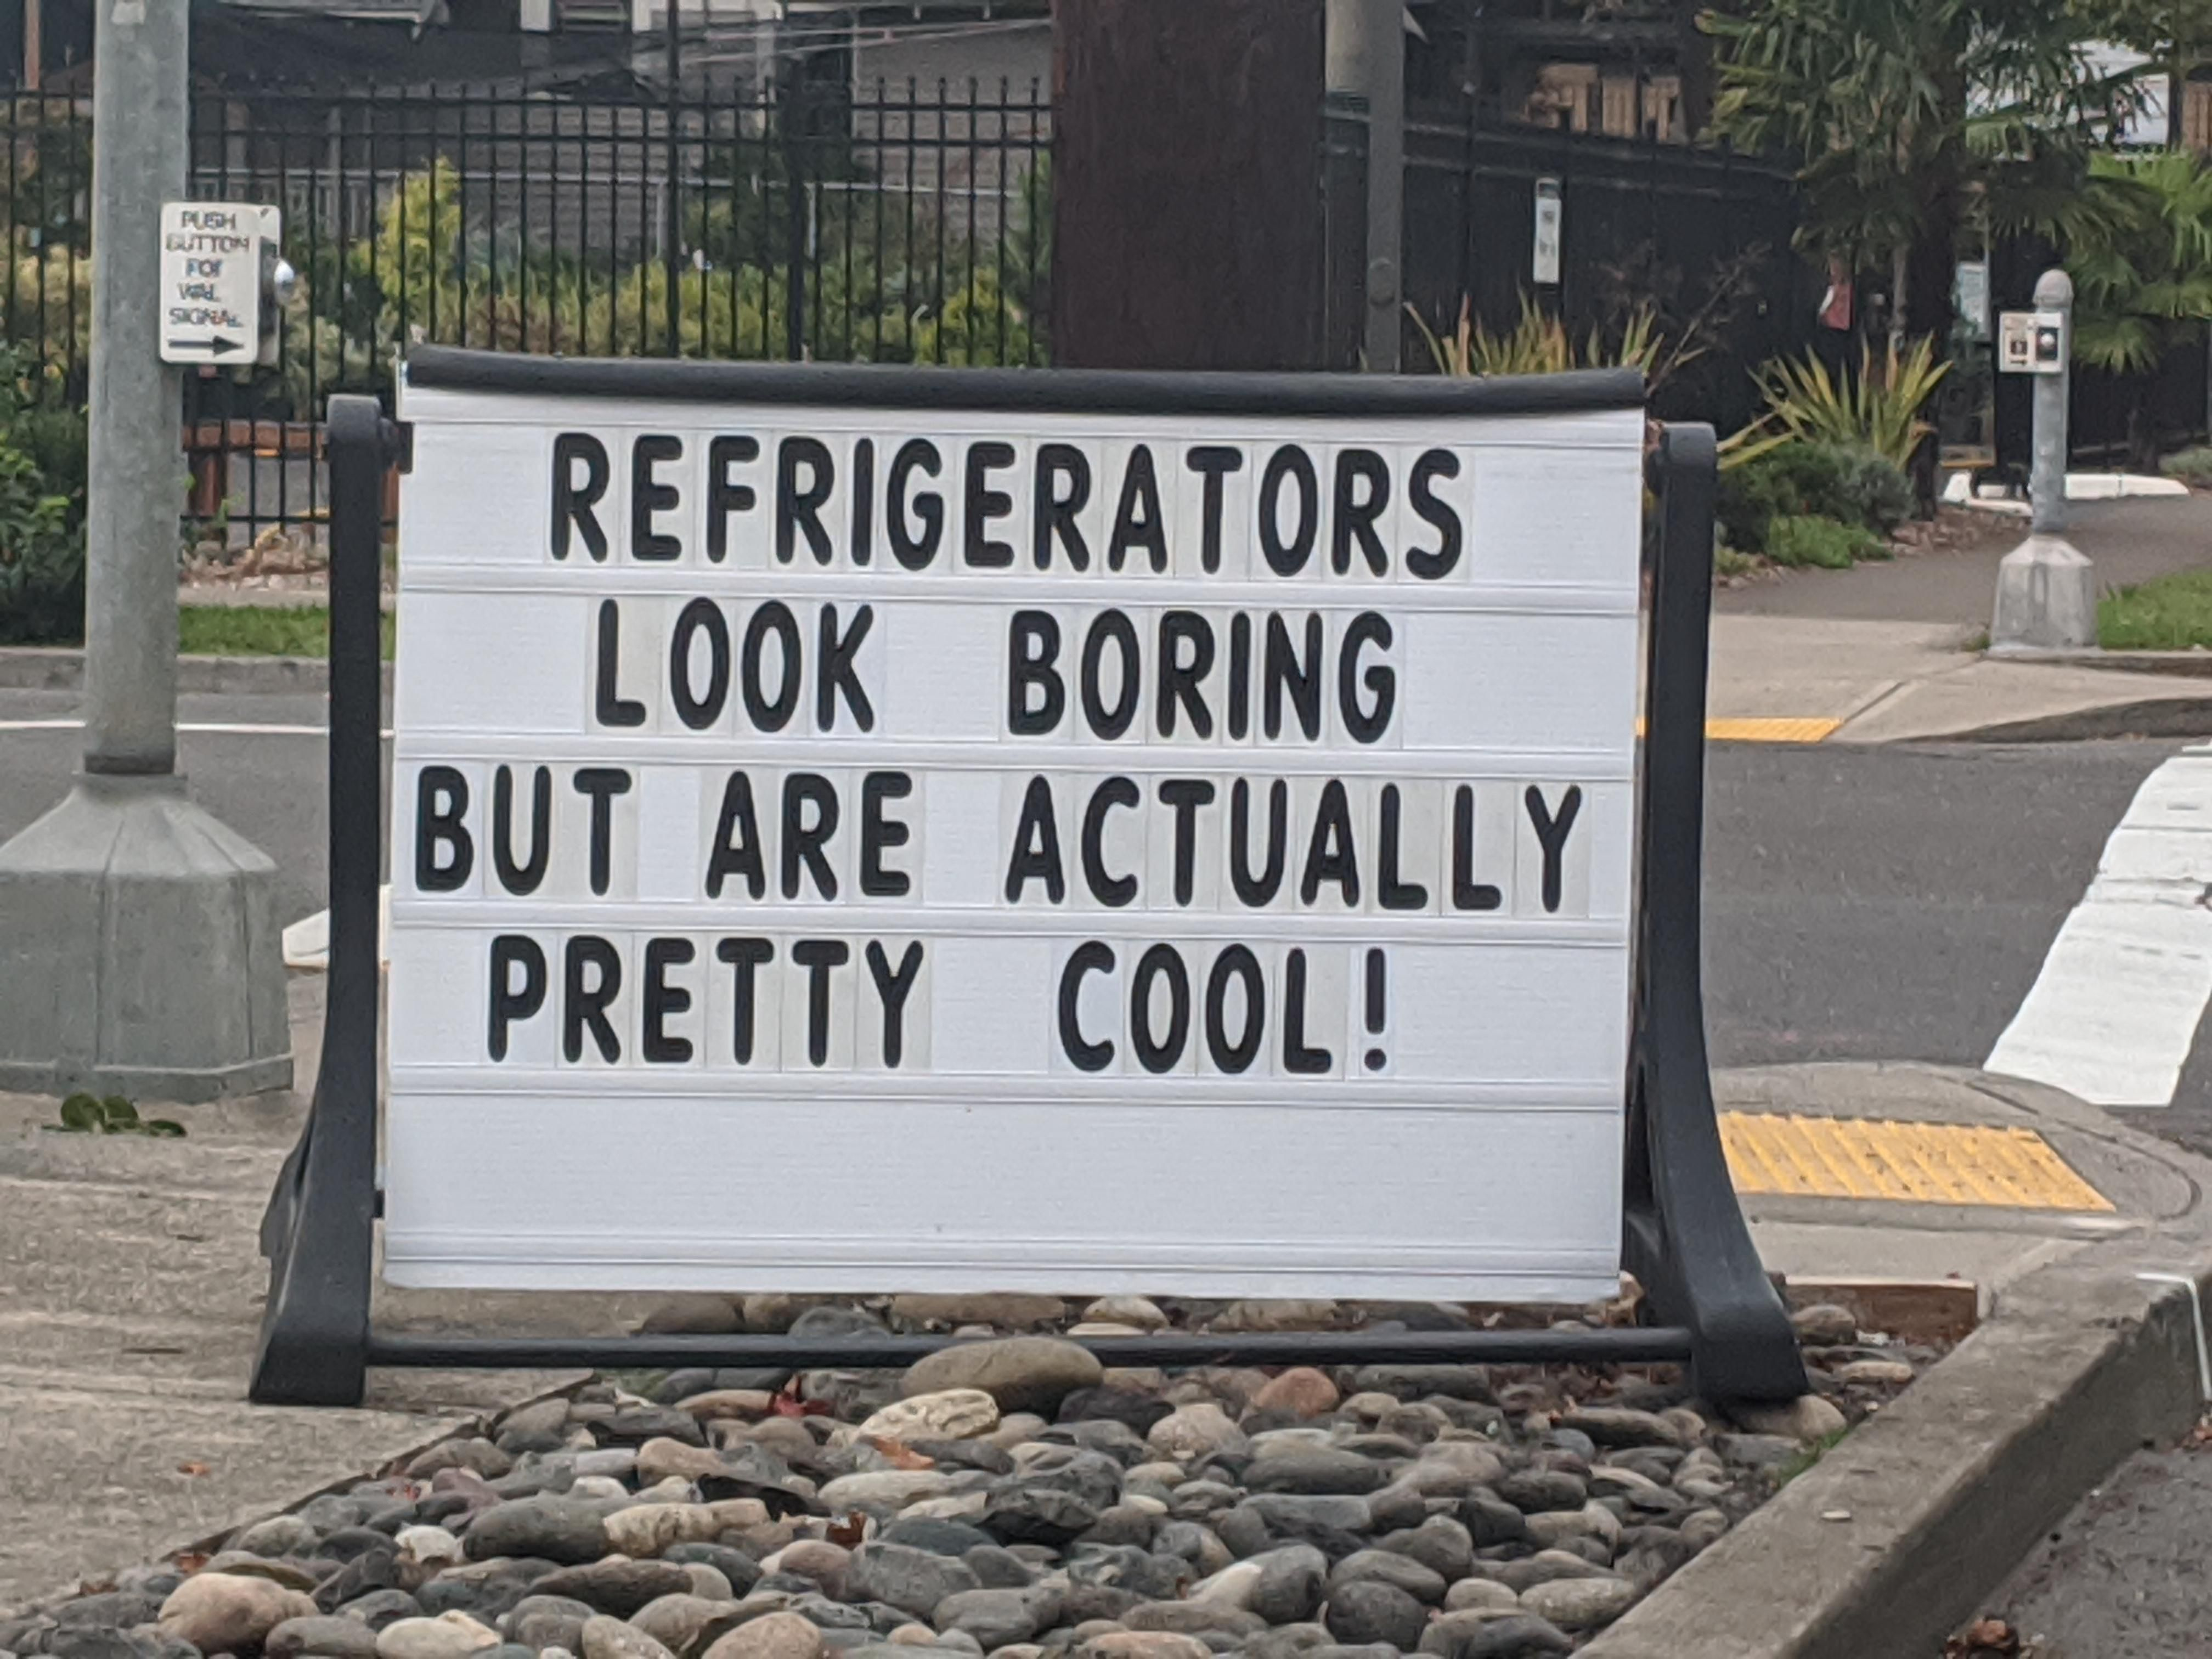 Seen yesterday outside of an appliance store